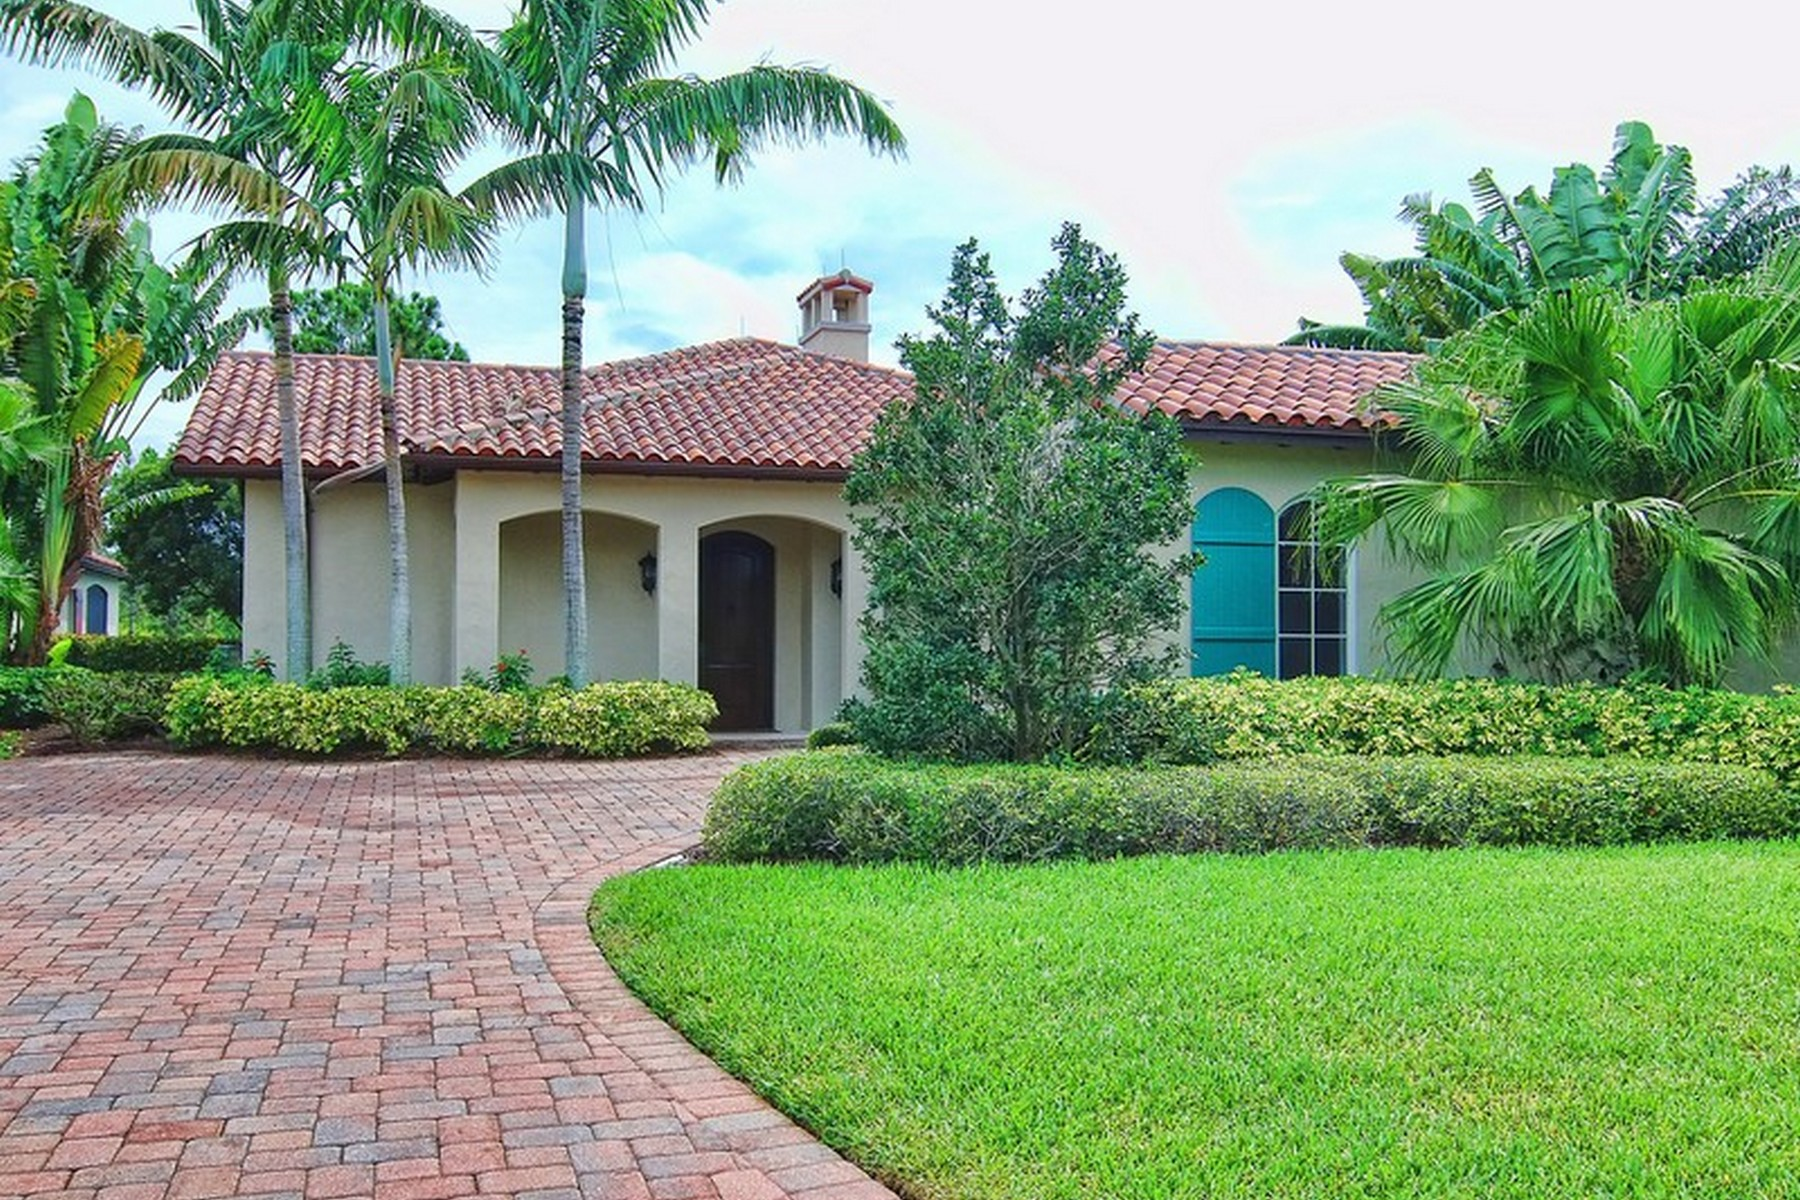 Multipropiedad por un Venta en 645 White Pelican Way (Interest 8) Jupiter, Florida 33477 Estados Unidos